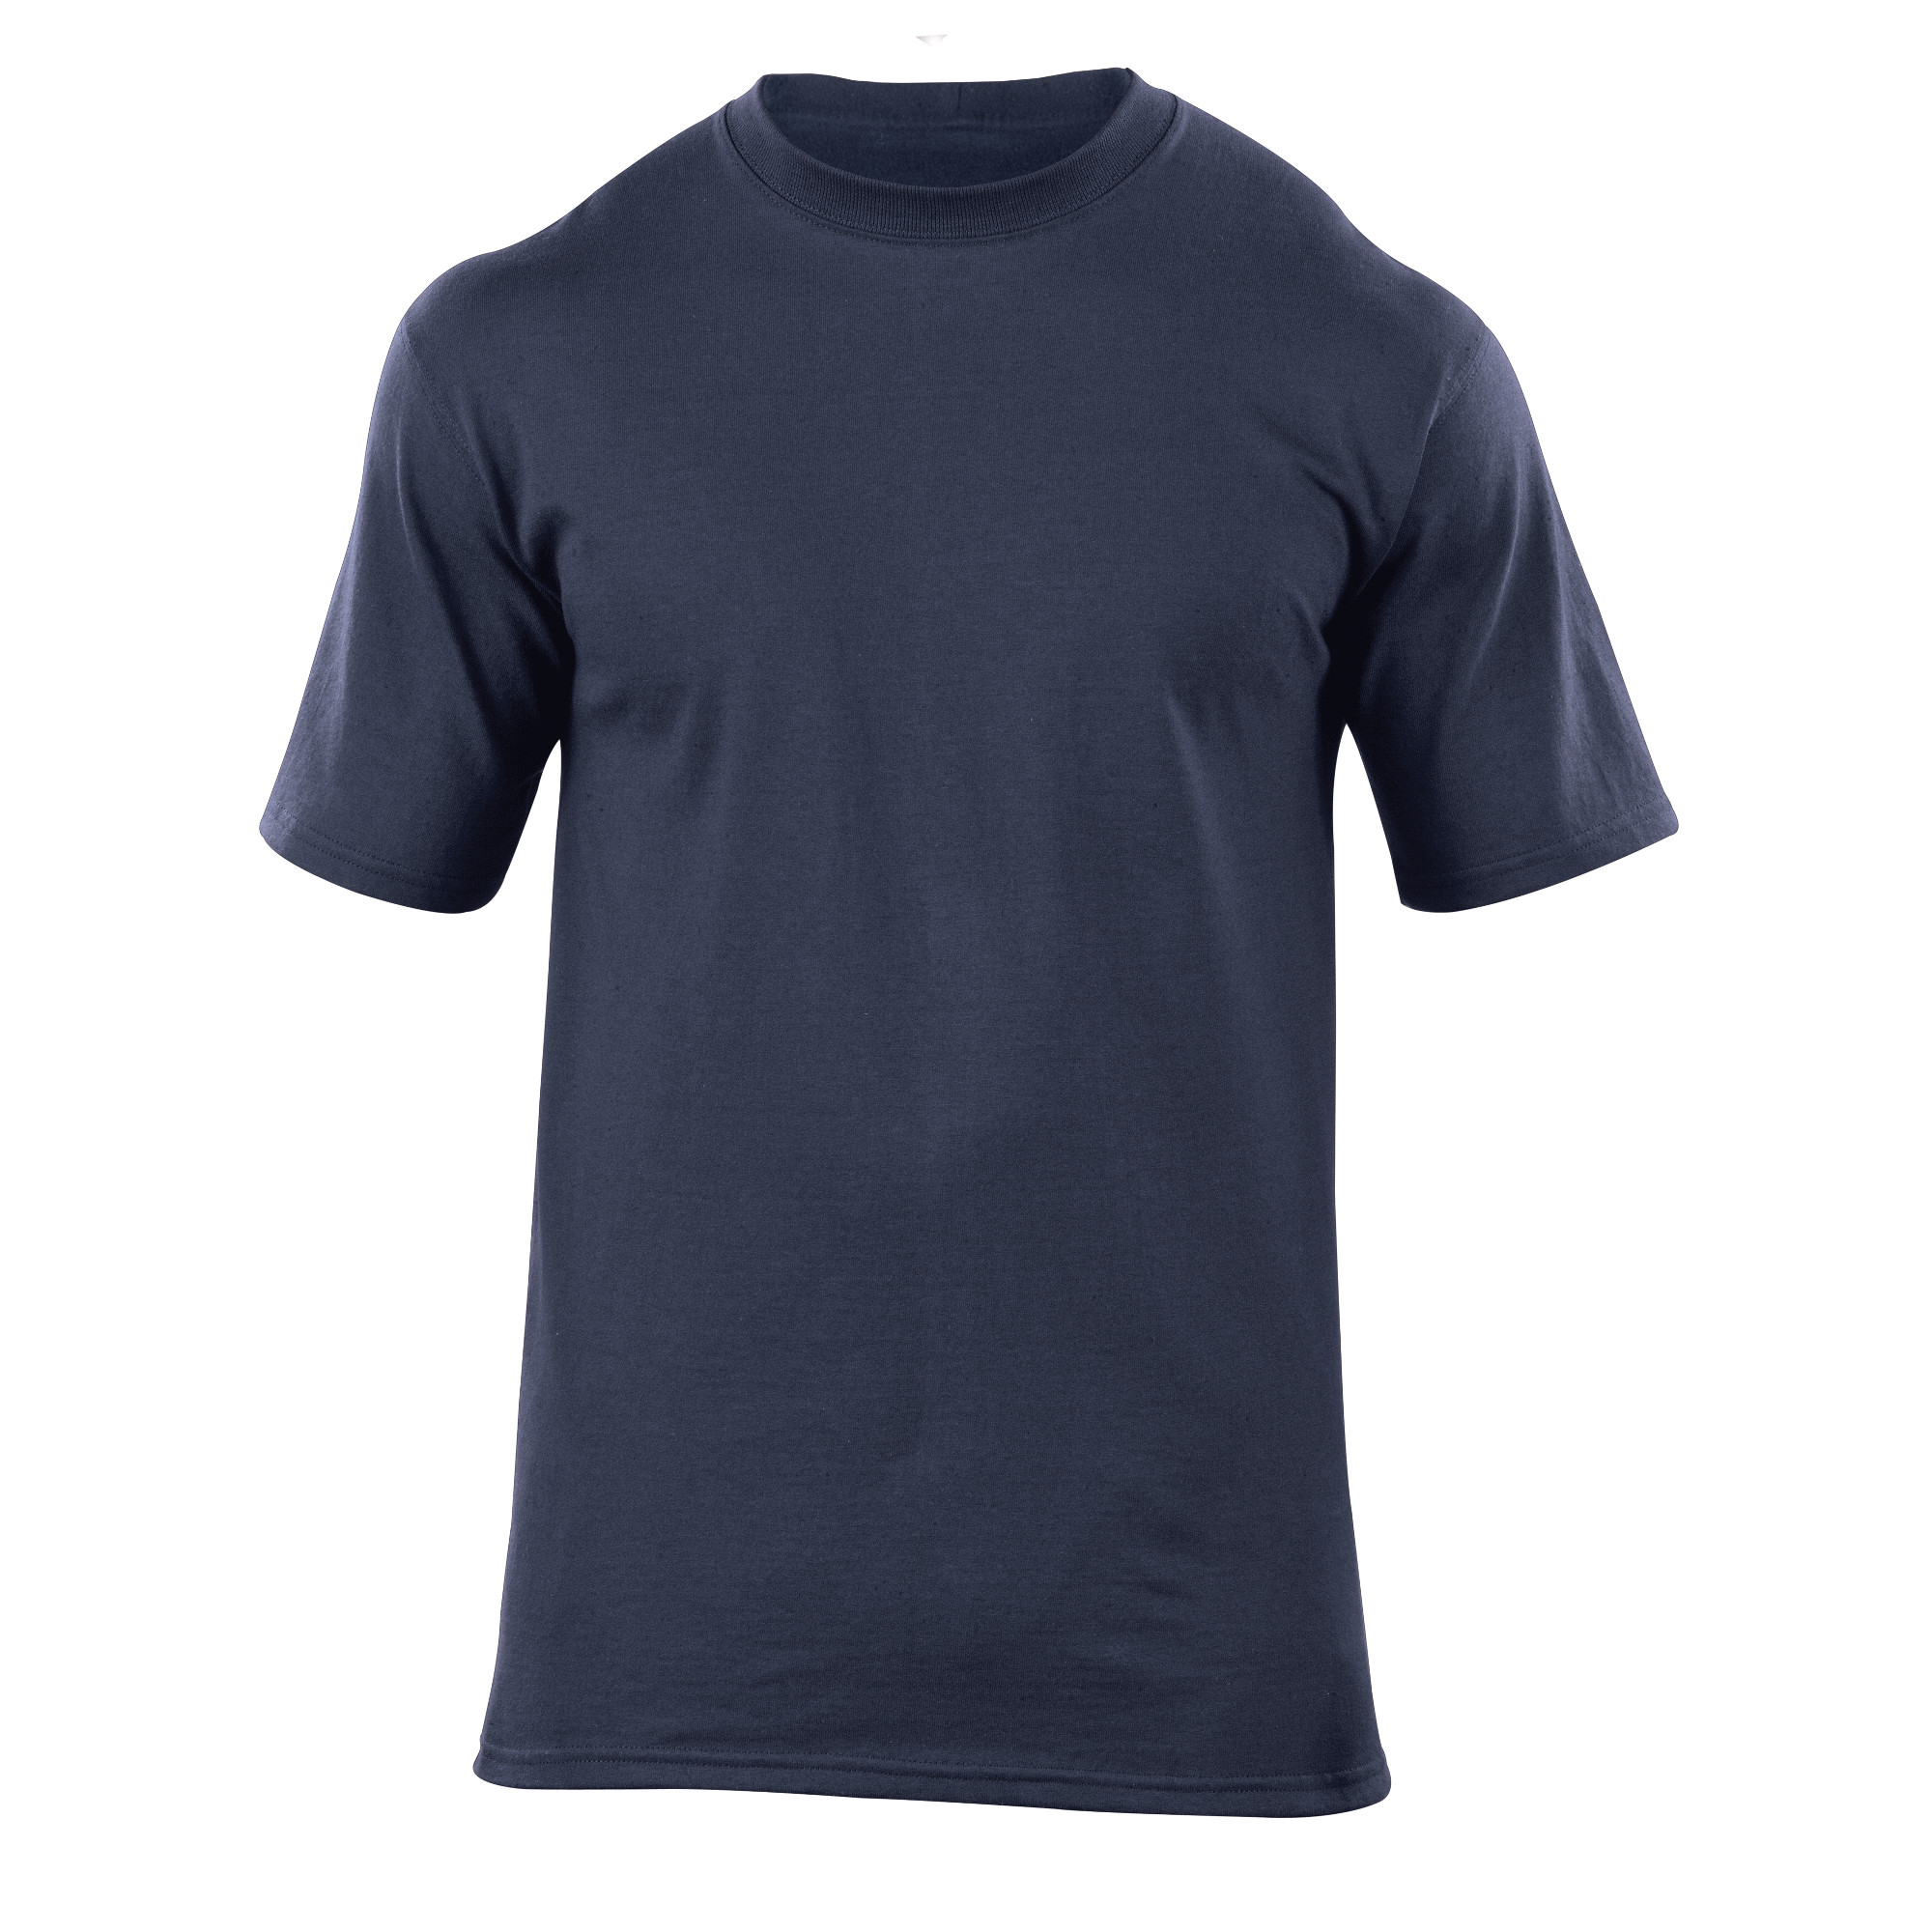 5.11 Mens Station Wear Short Sleeve Tee 40050